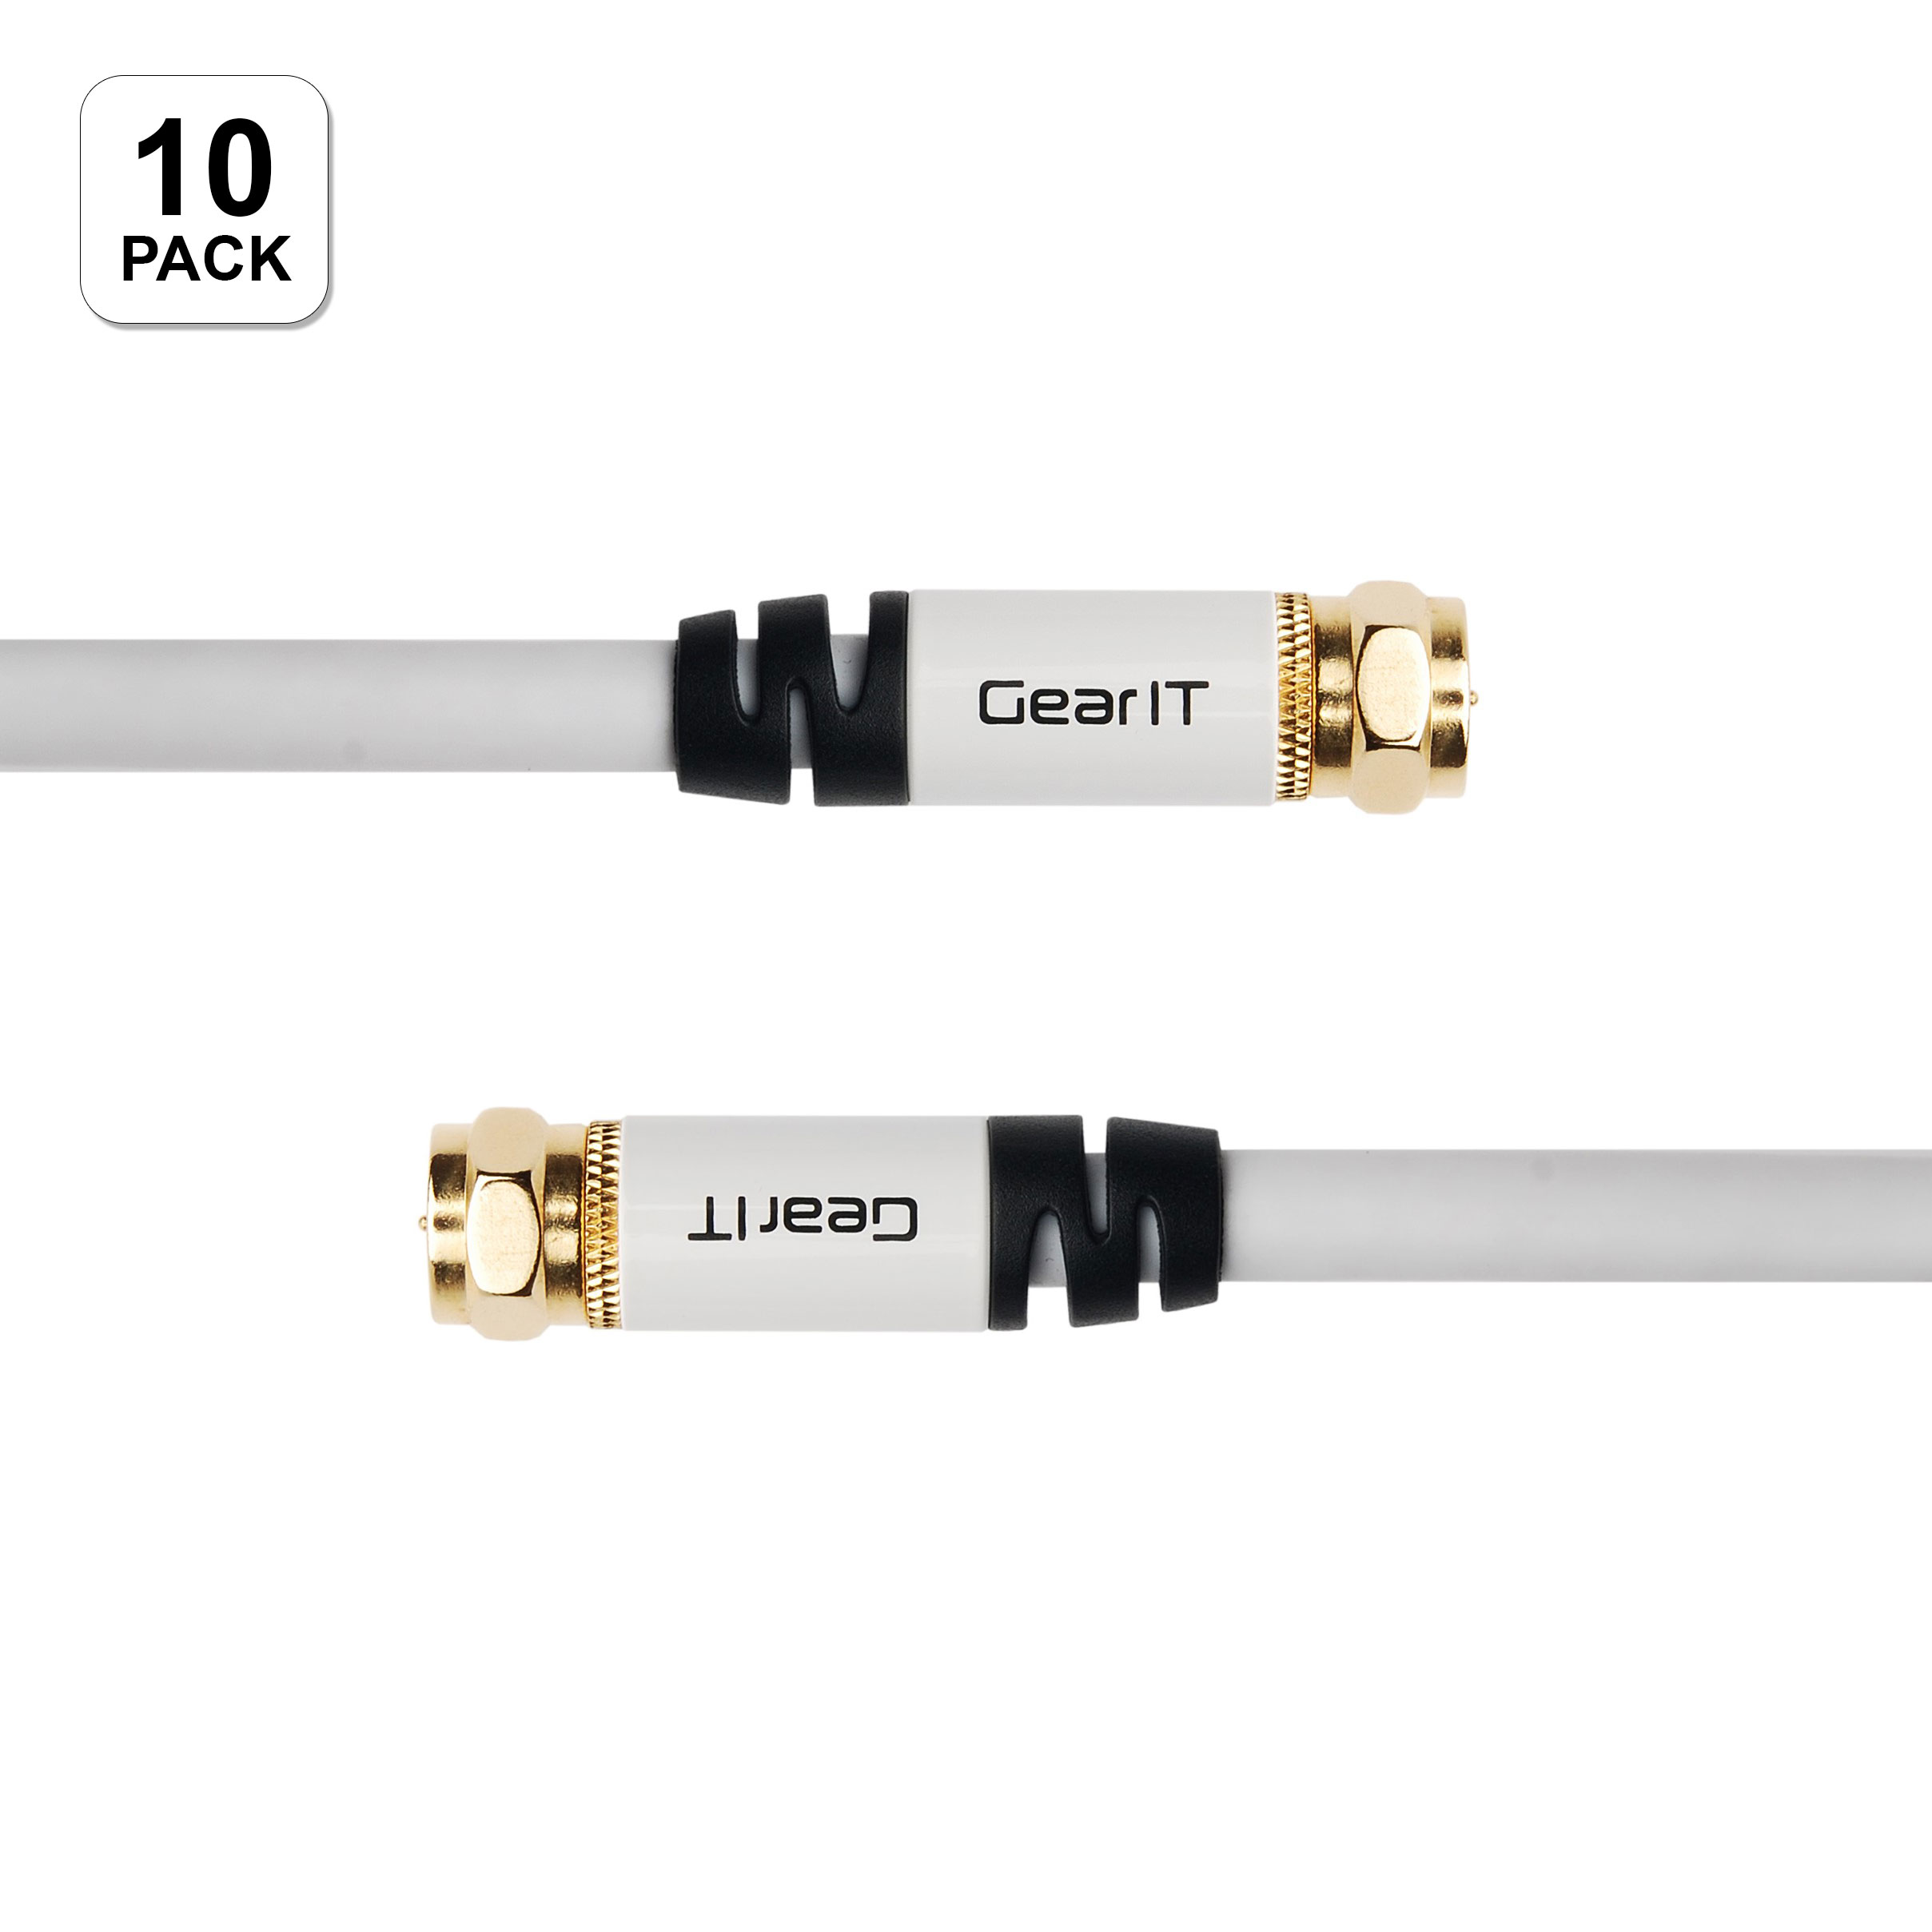 GearIt (10-Pack) Coaxial RG6 Digital Audio / Video Cable ...